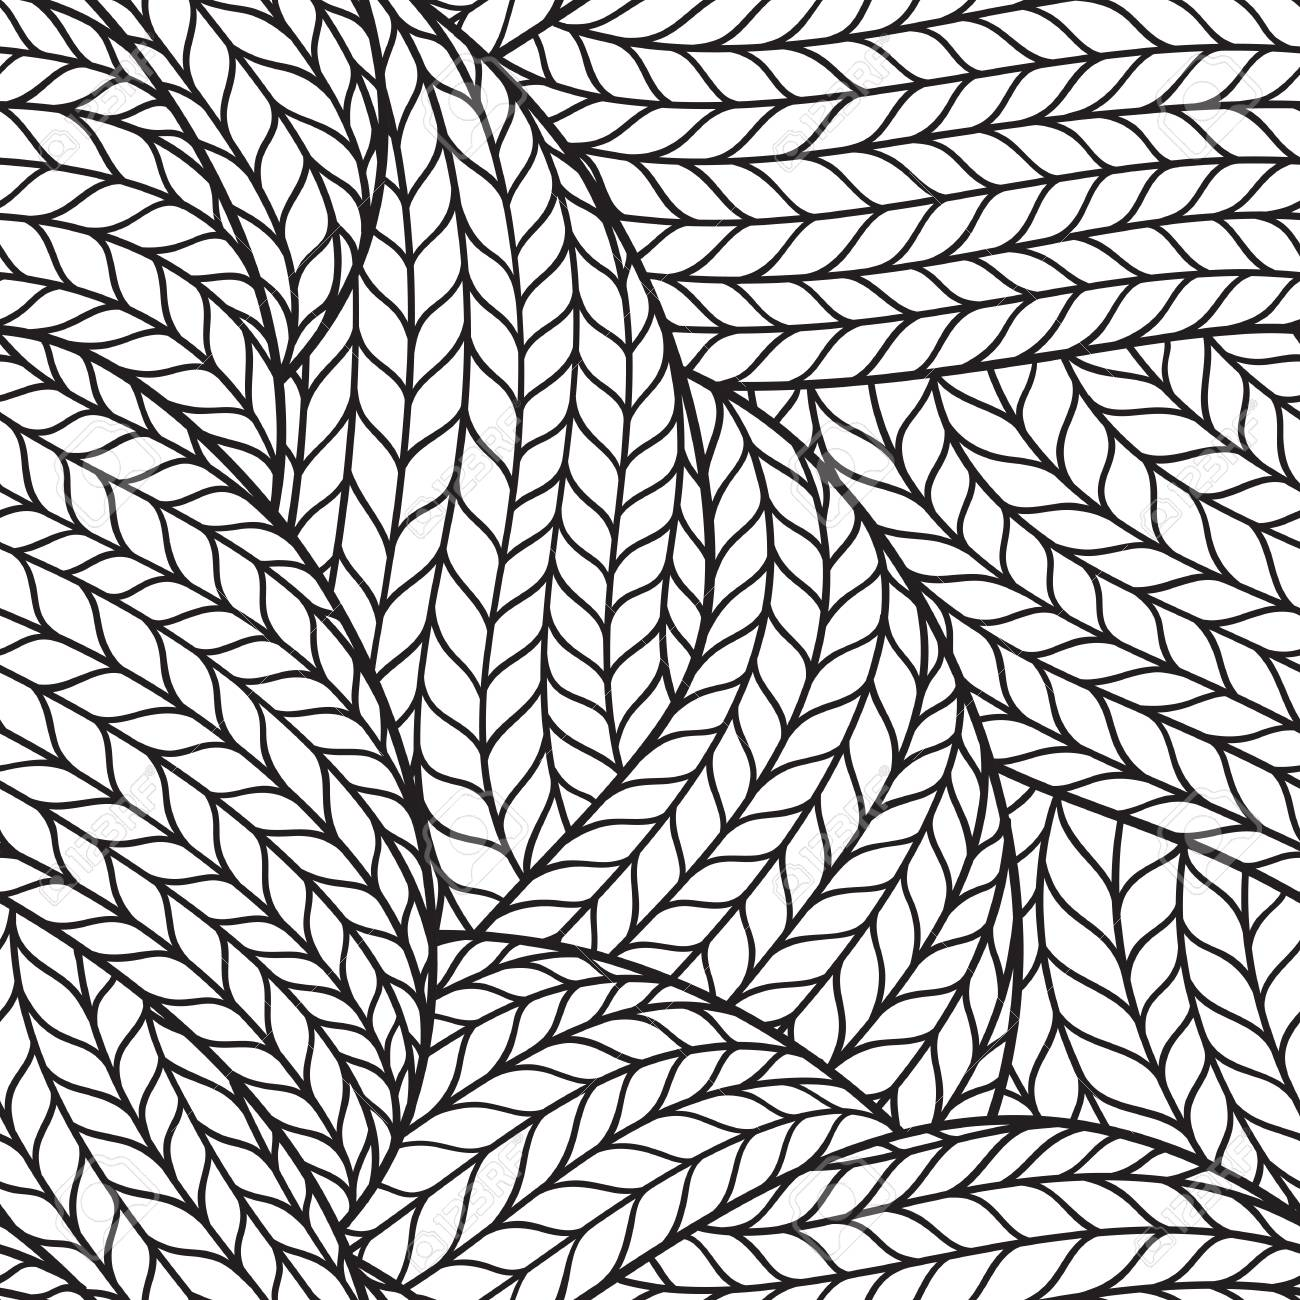 1300x1300 Abstract Monochrome Hand Drawn Abstract Seamless Pattern With Wavy